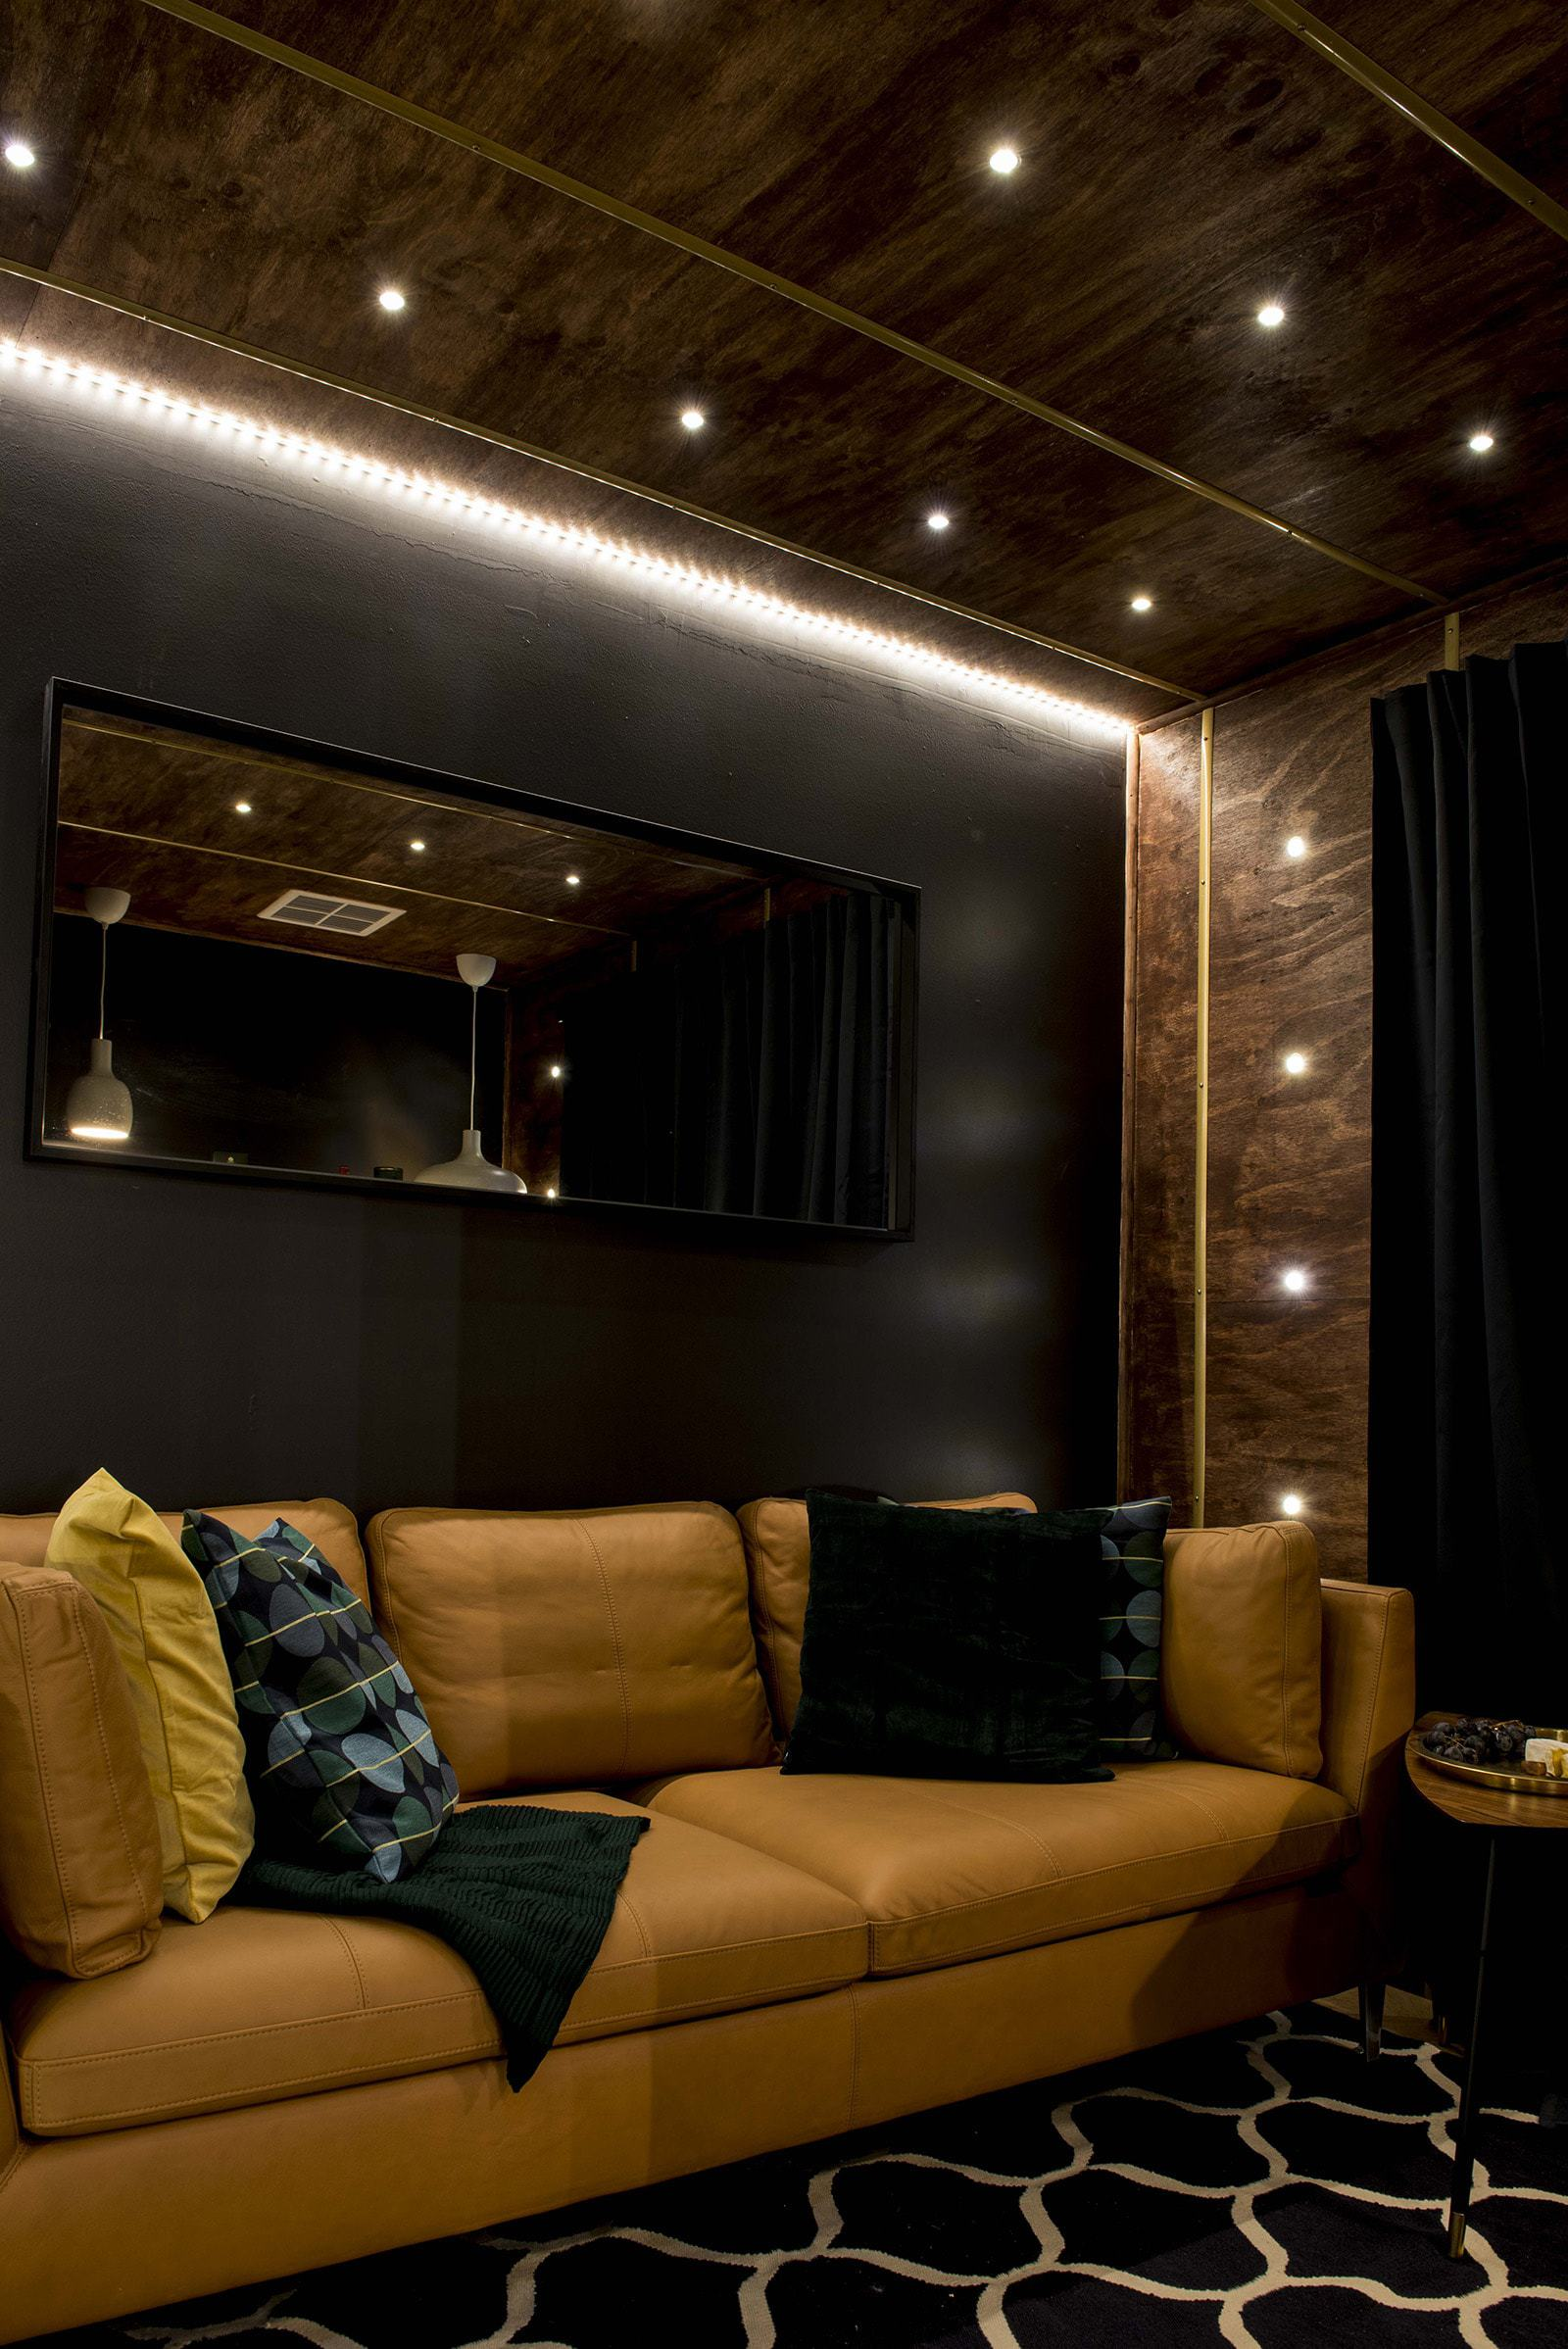 house rules 2019 lisa and andy den tan leather sofa in black room